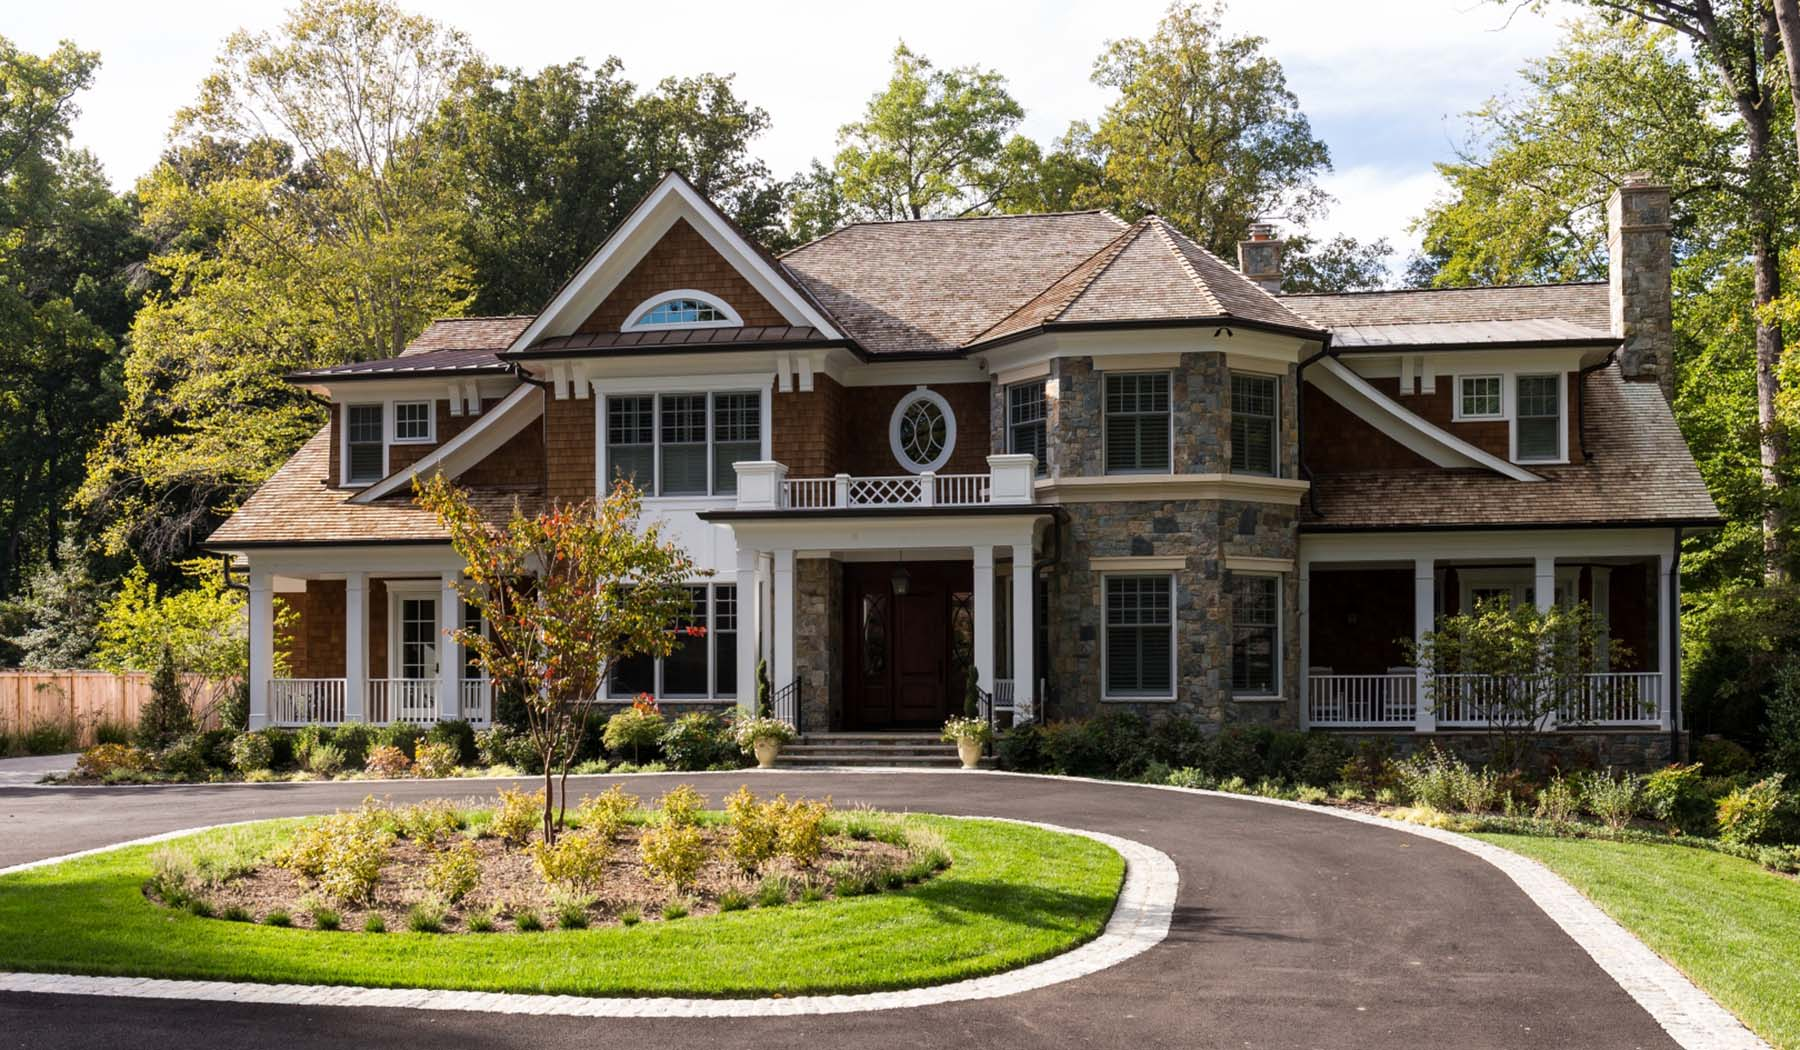 most popular siding color for houses brown siding with real stone veneer white trim